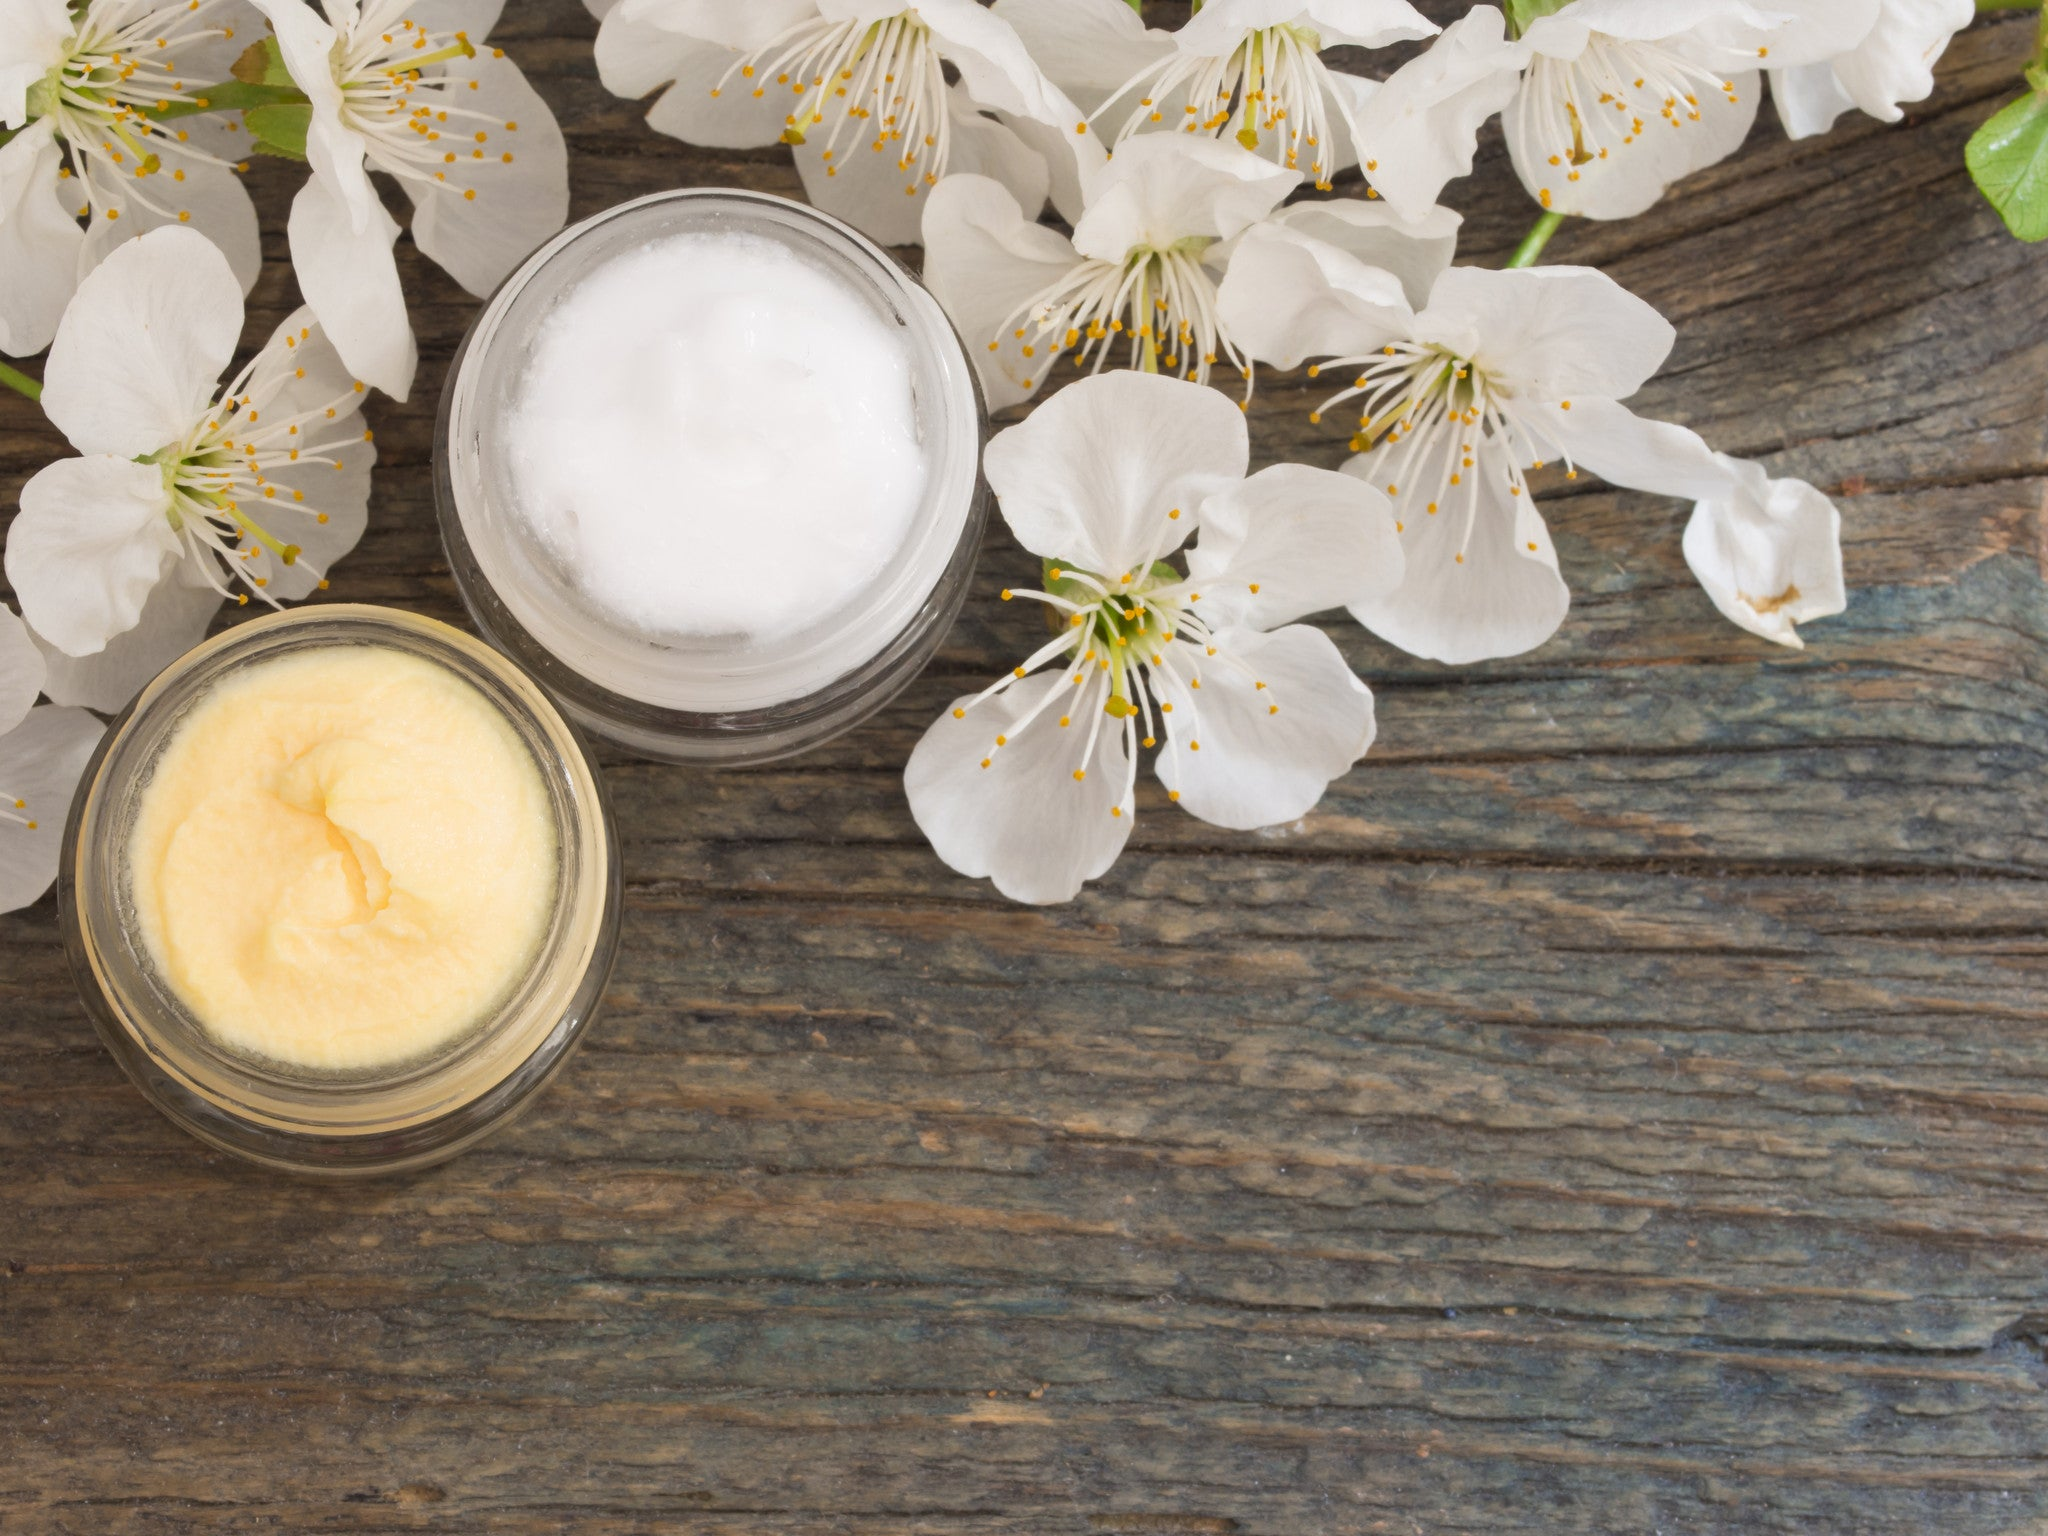 How to Choose the Best Natural Skin Care Product